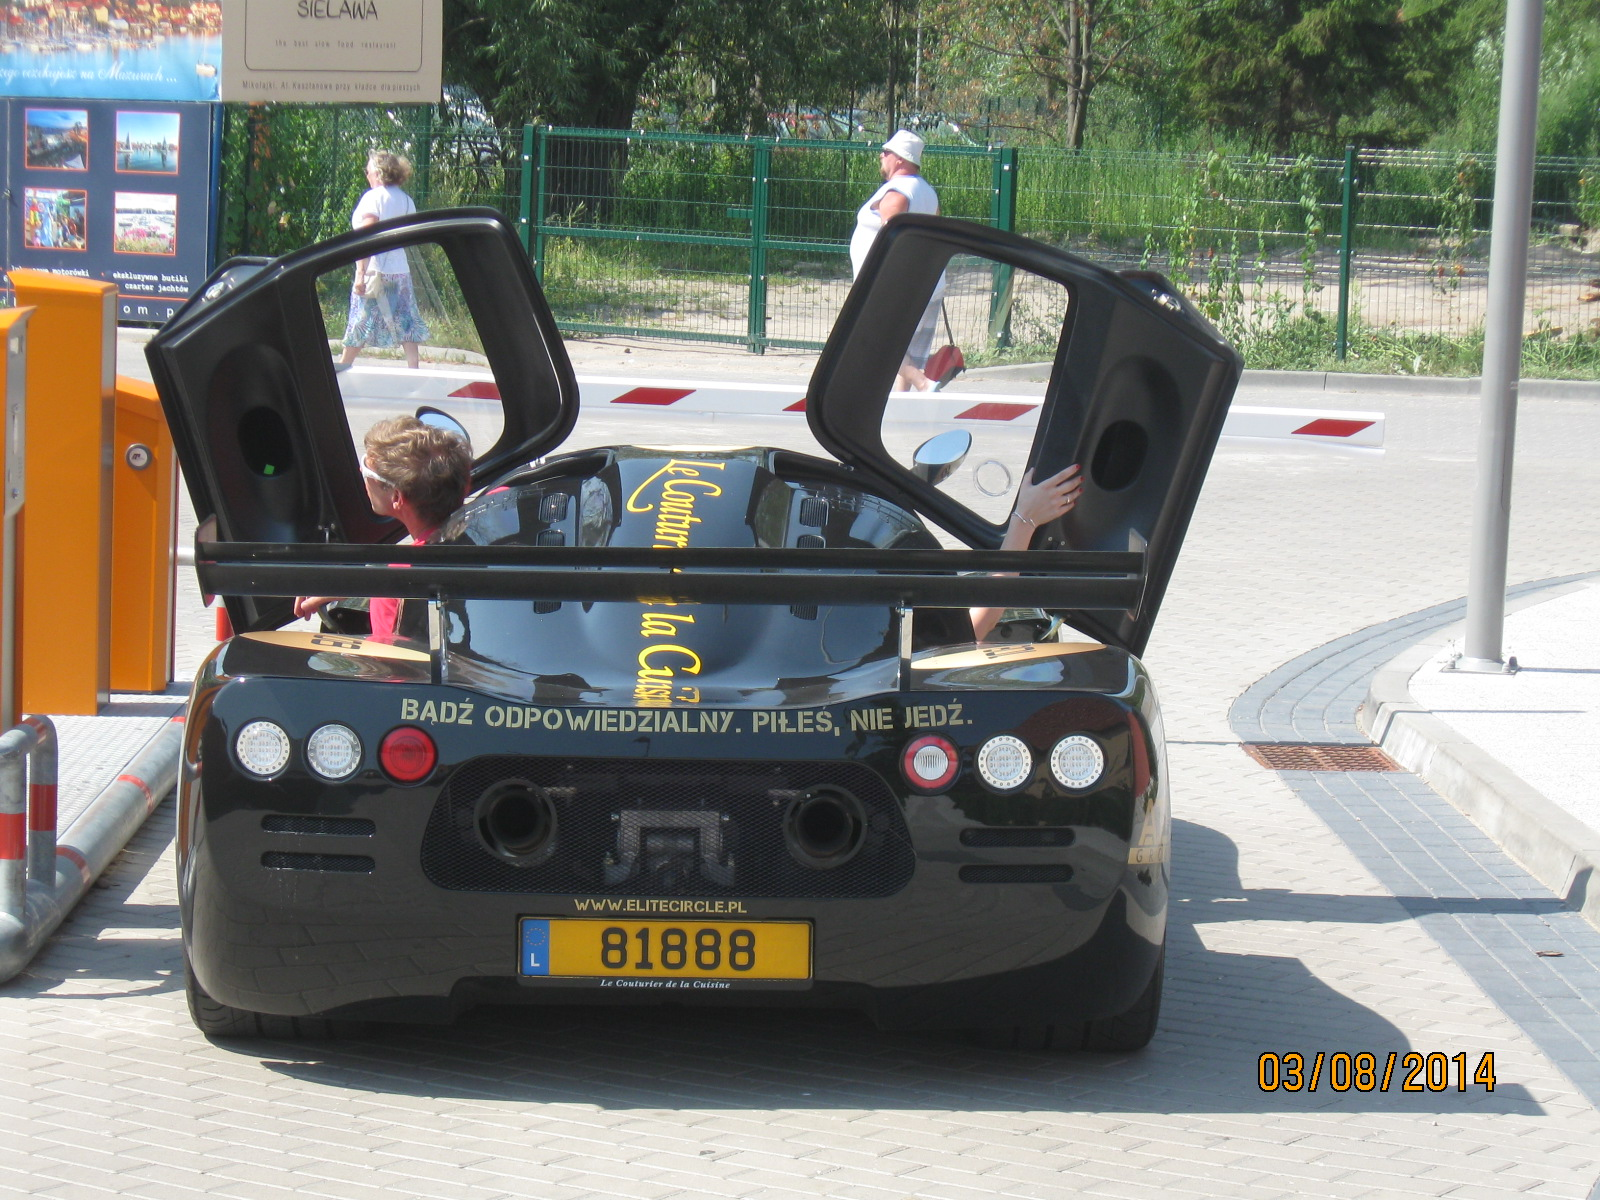 http://124coupe.pl/hosting/images/img3010.jpg